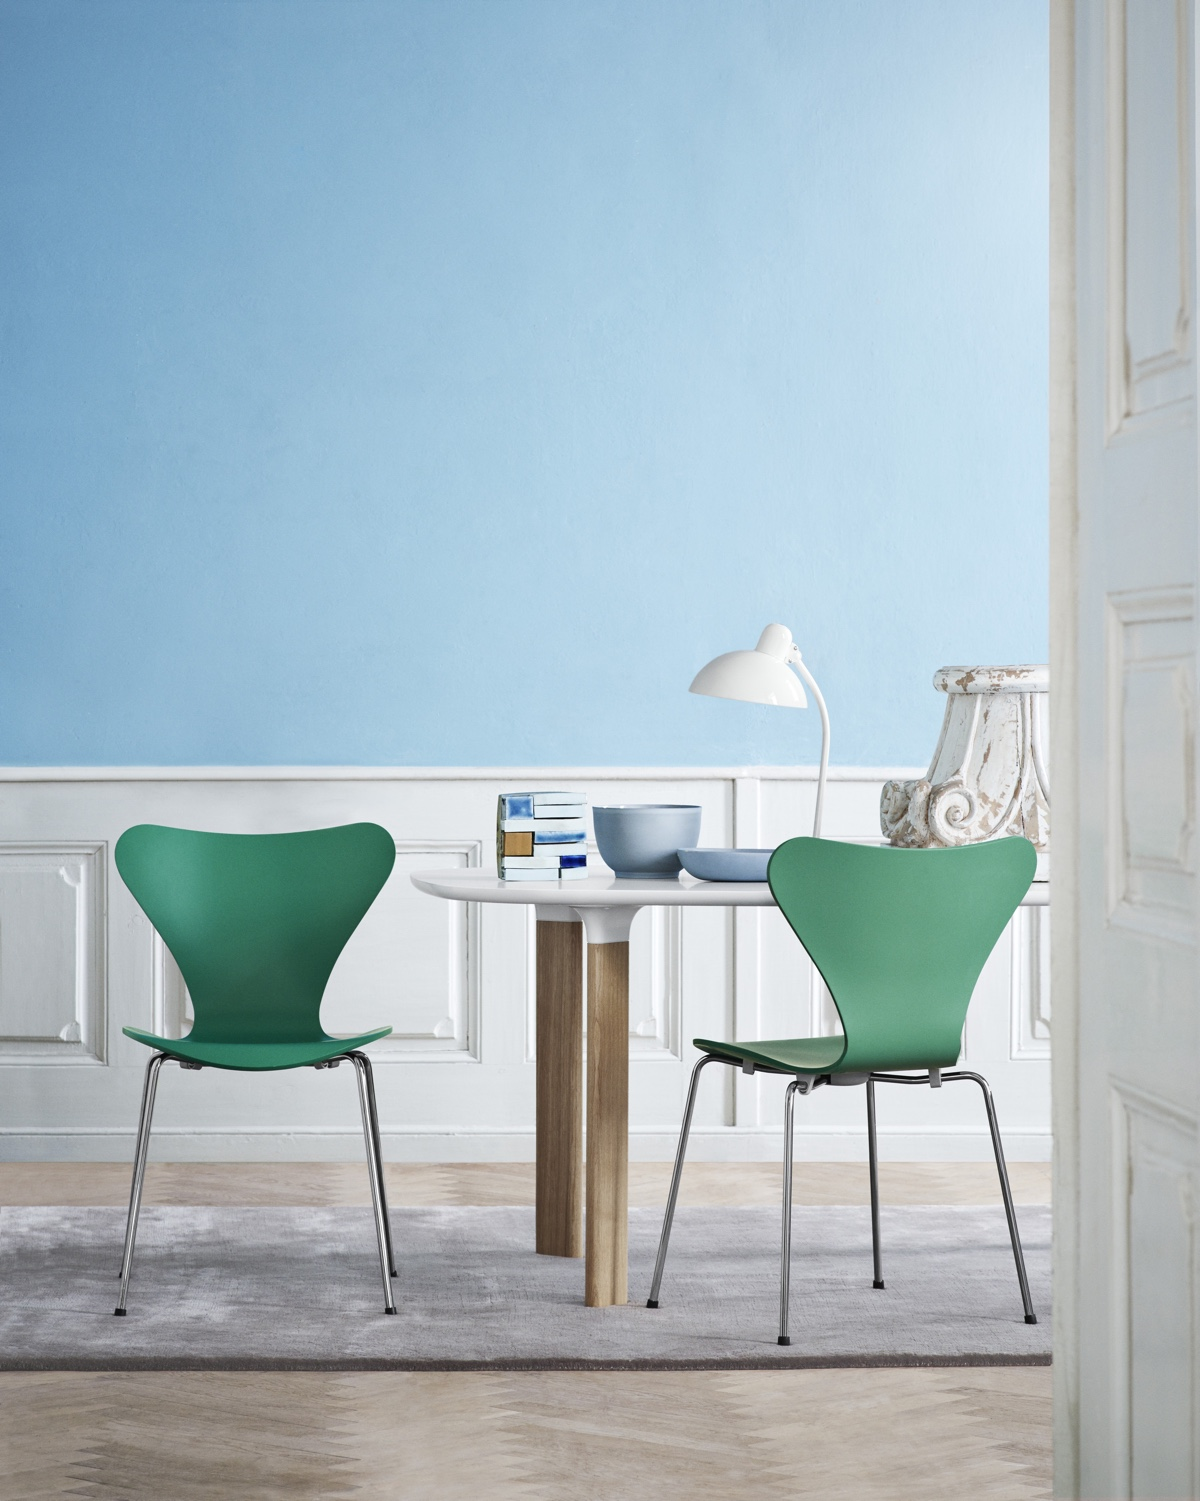 Series 7™ by Arne Jacobsen in Hüzün Green.